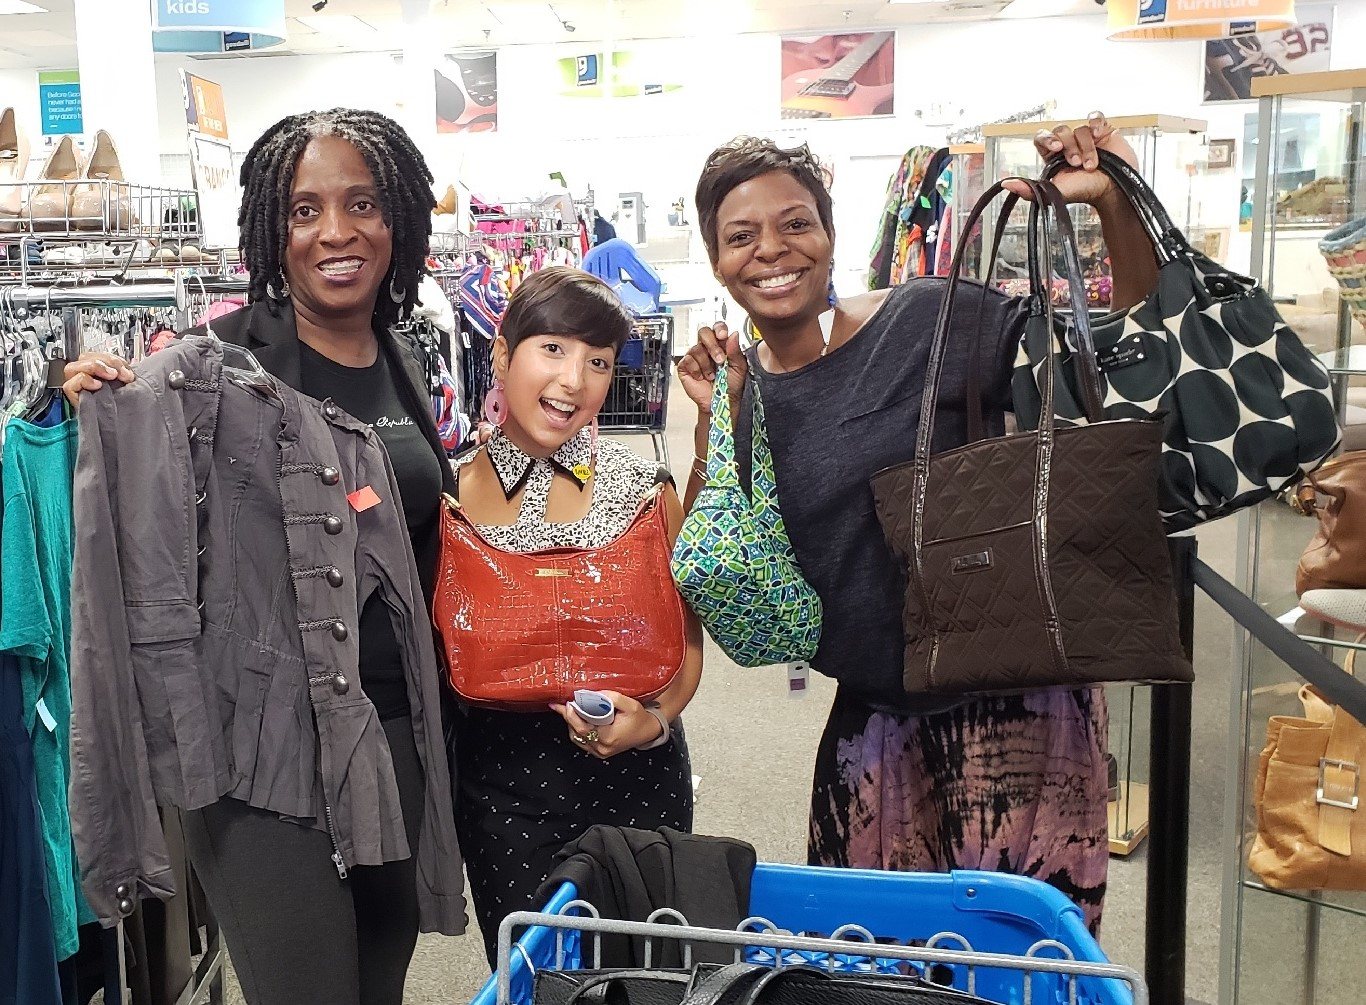 Carolyn poses with Meetup shoppers at Richmond Highway Goodwill store